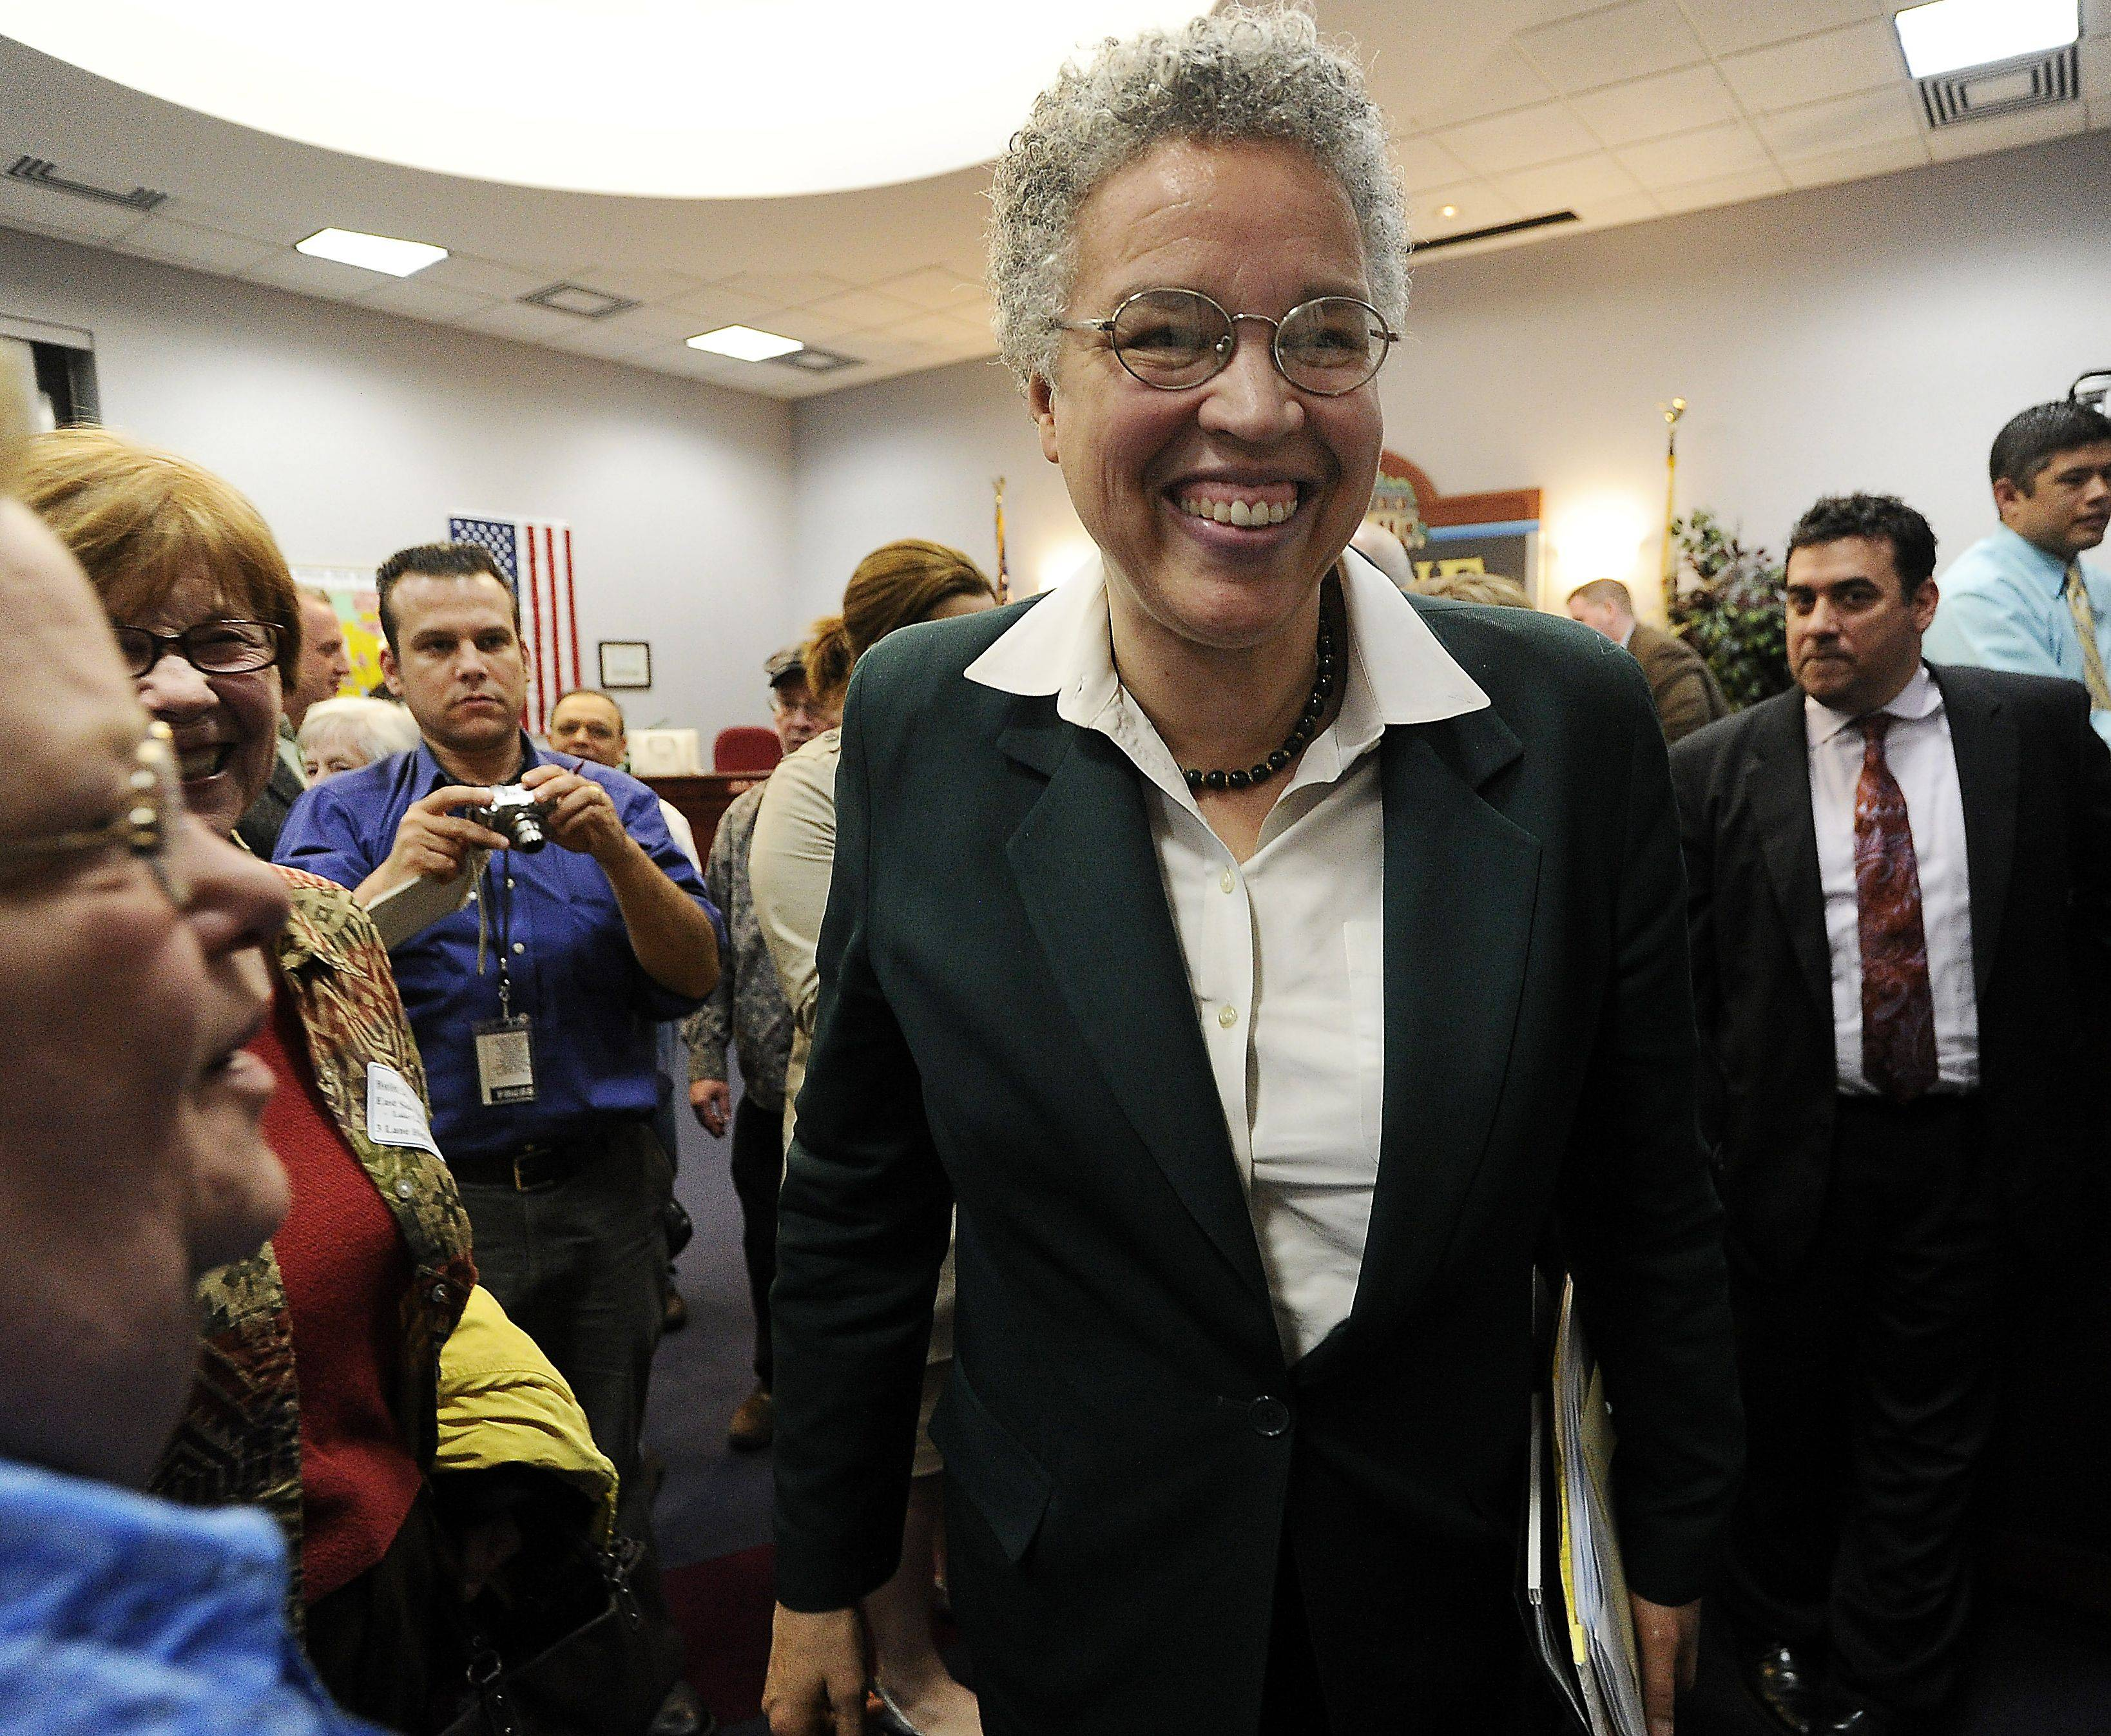 Cook County Board President Toni Preckwinkle got a warm reception from a standing-room-only crowd Monday when she appeared before the Palatine village council.